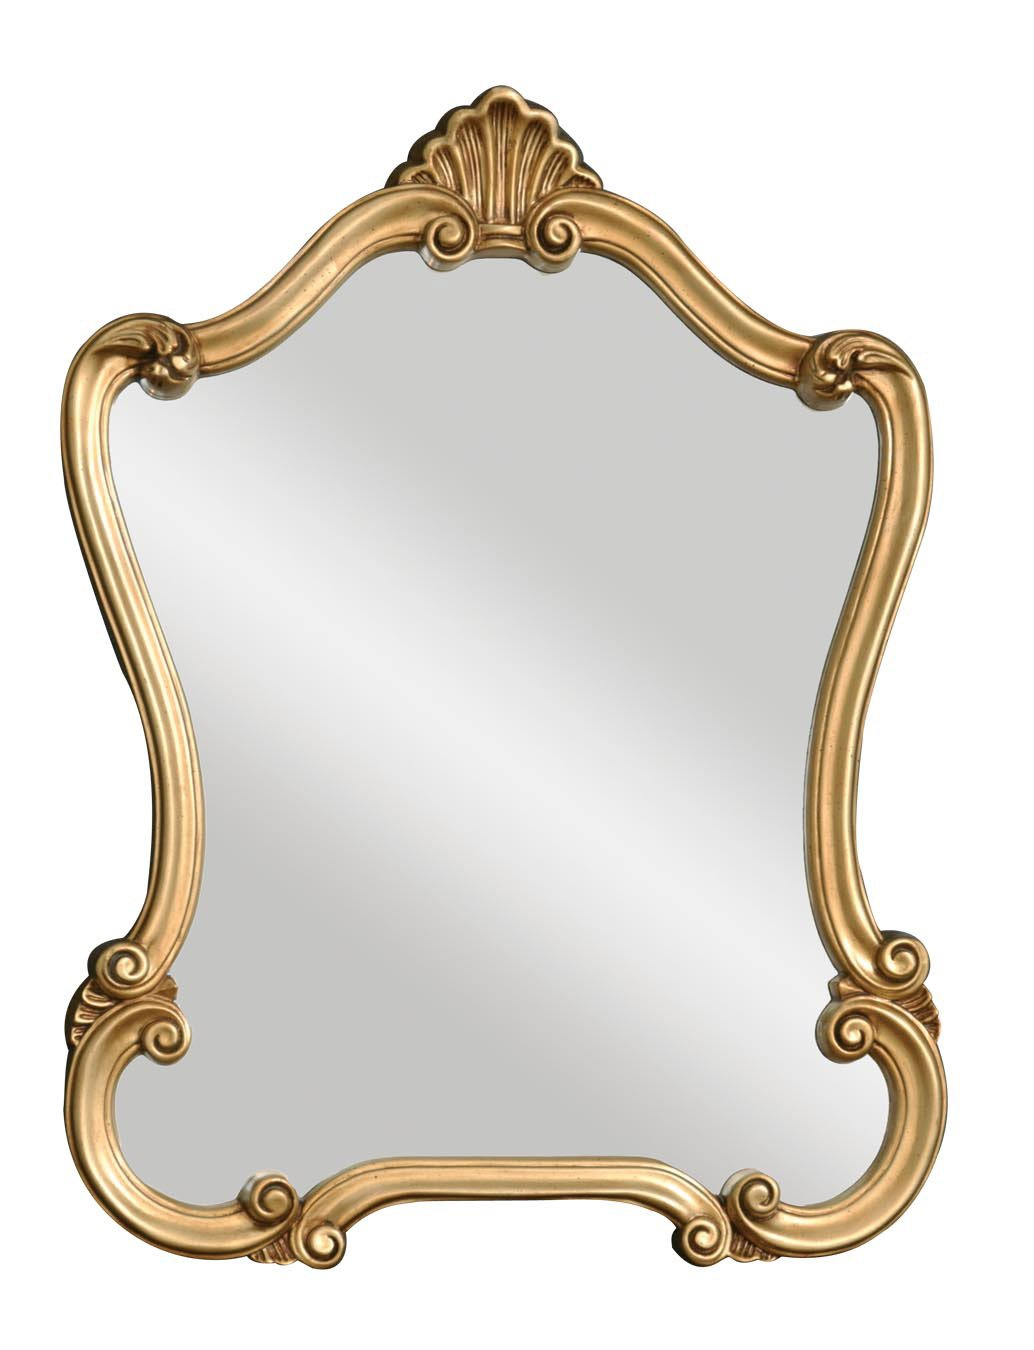 Amazon uttermost 08340 p walton hall mirror antique gold amazon uttermost 08340 p walton hall mirror antique gold home kitchen amipublicfo Gallery